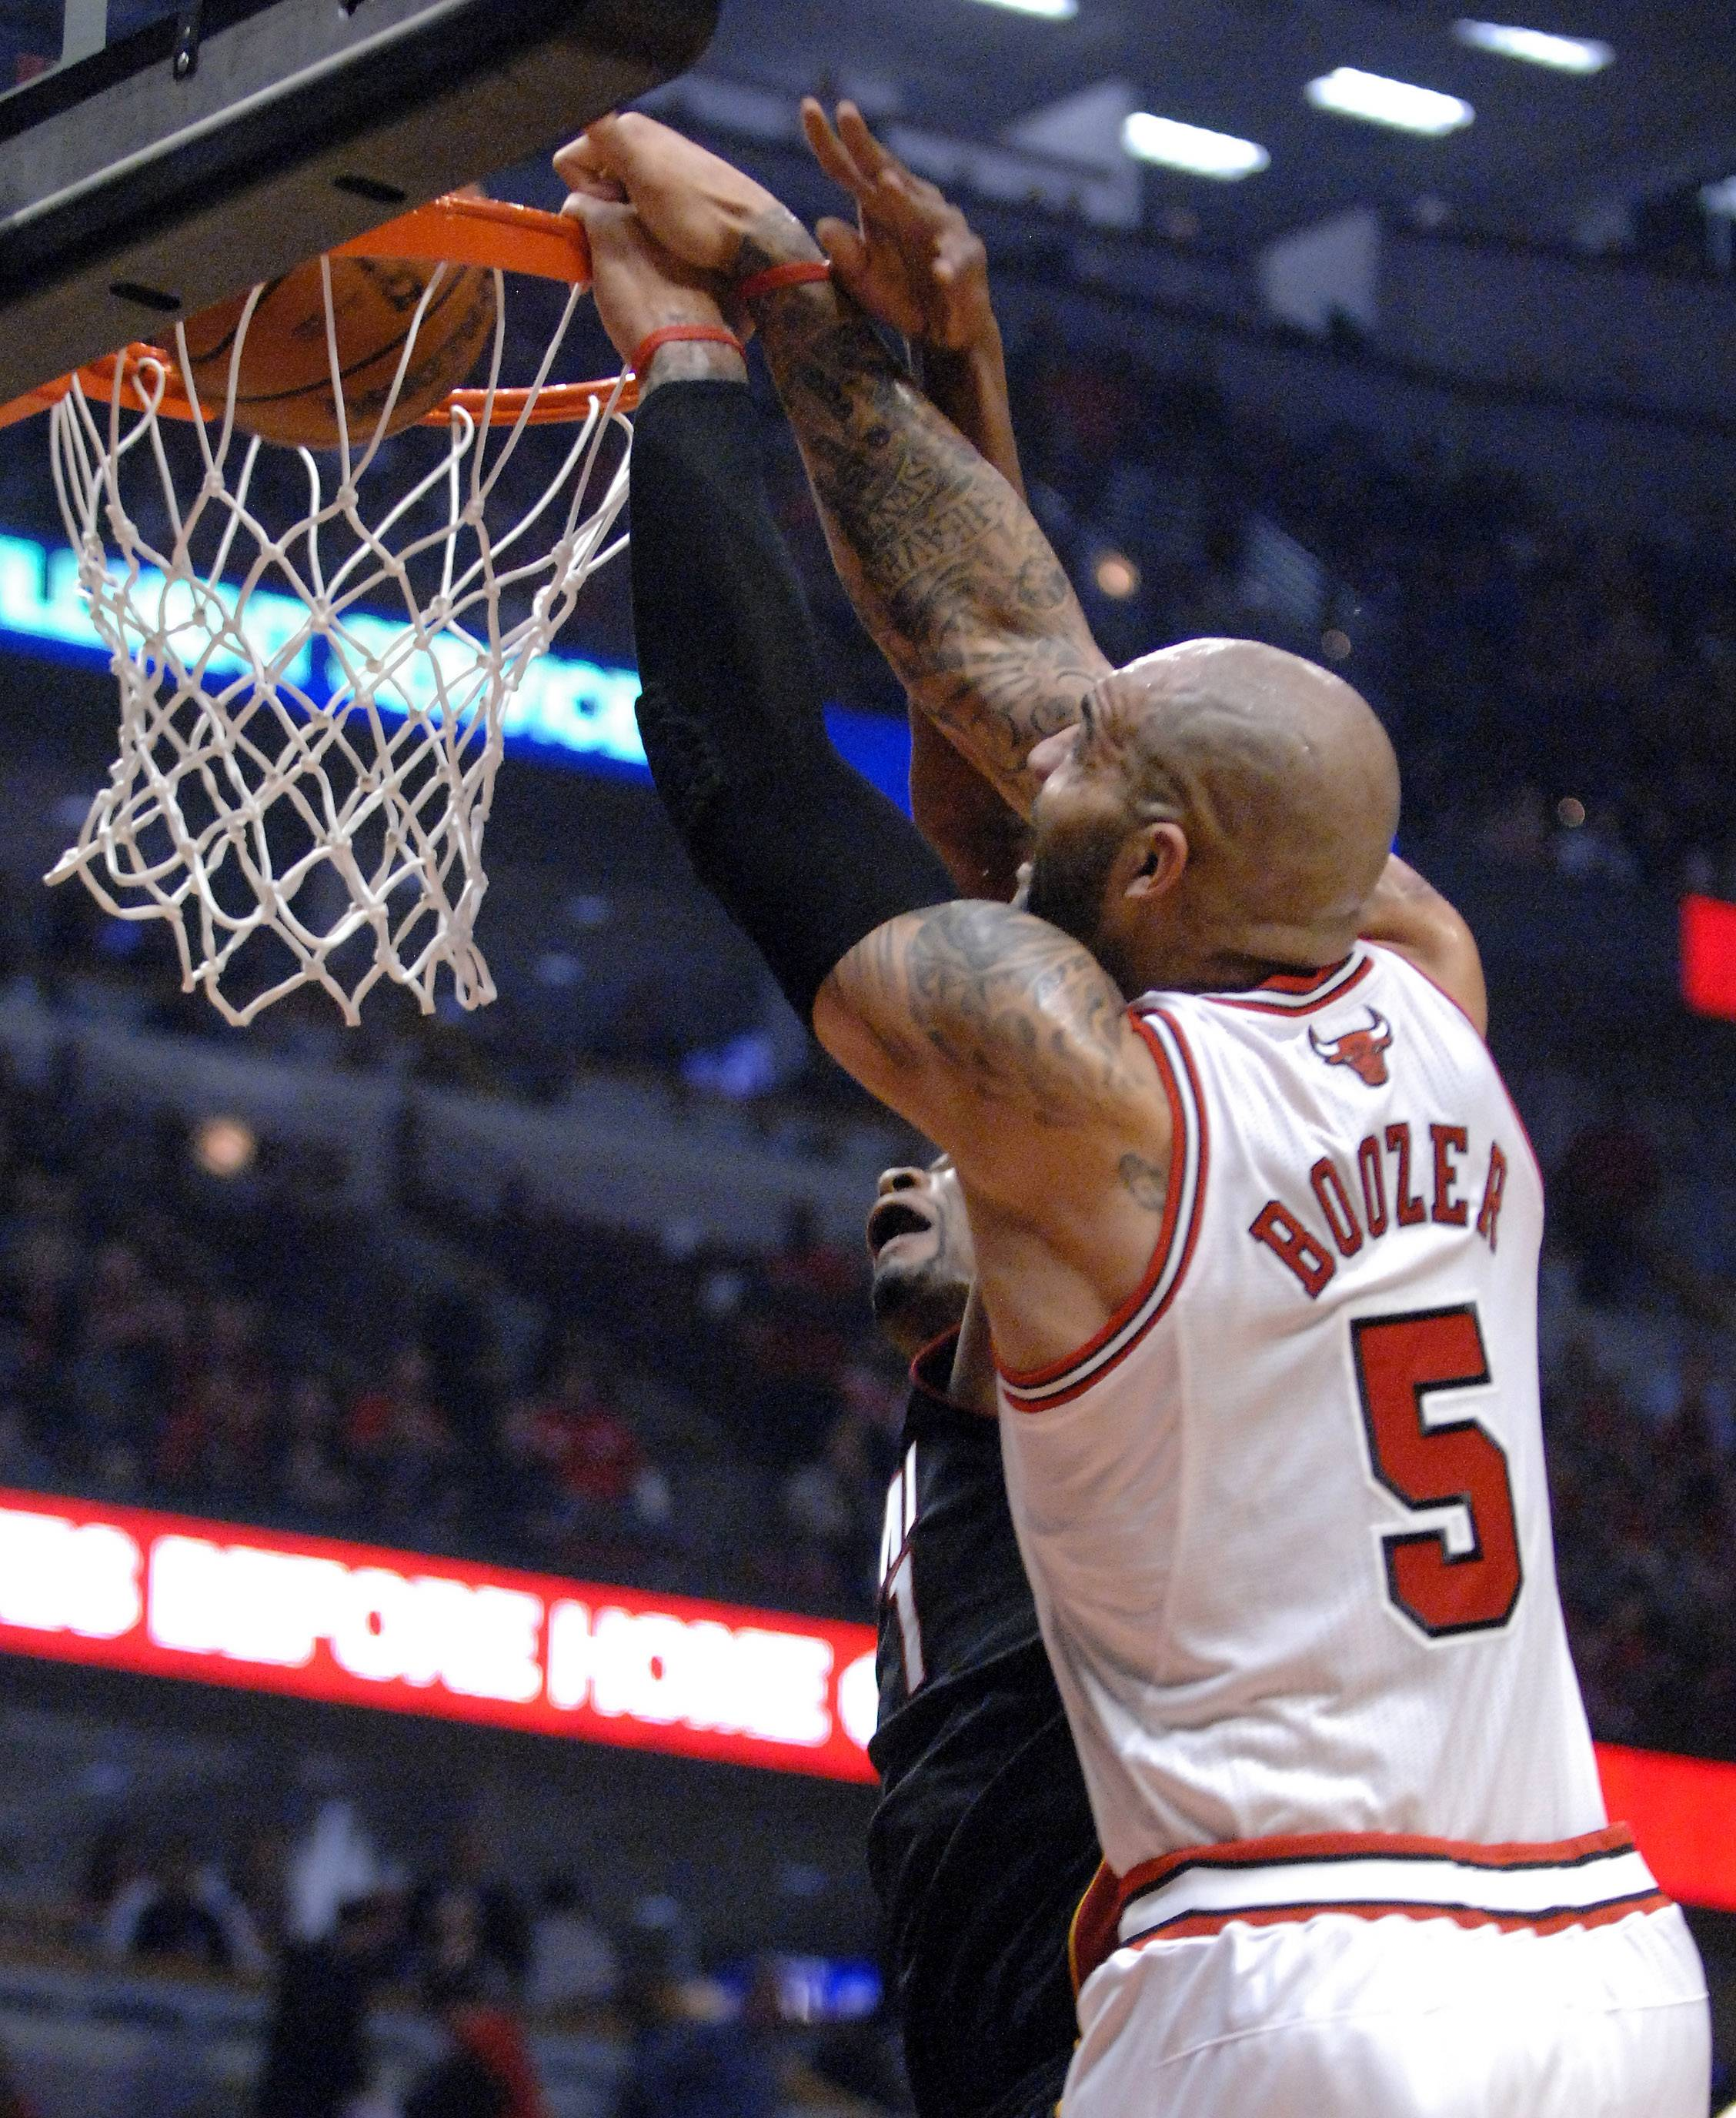 Chicago Bulls power forward Carlos Boozer (5) dunks over Miami Heat center Chris Bosh (1) during Game 3 of an NBA basketball playoffs Eastern Conference semifinal on Friday, May 10, 2013, in Chicago. The heat won 104-94.